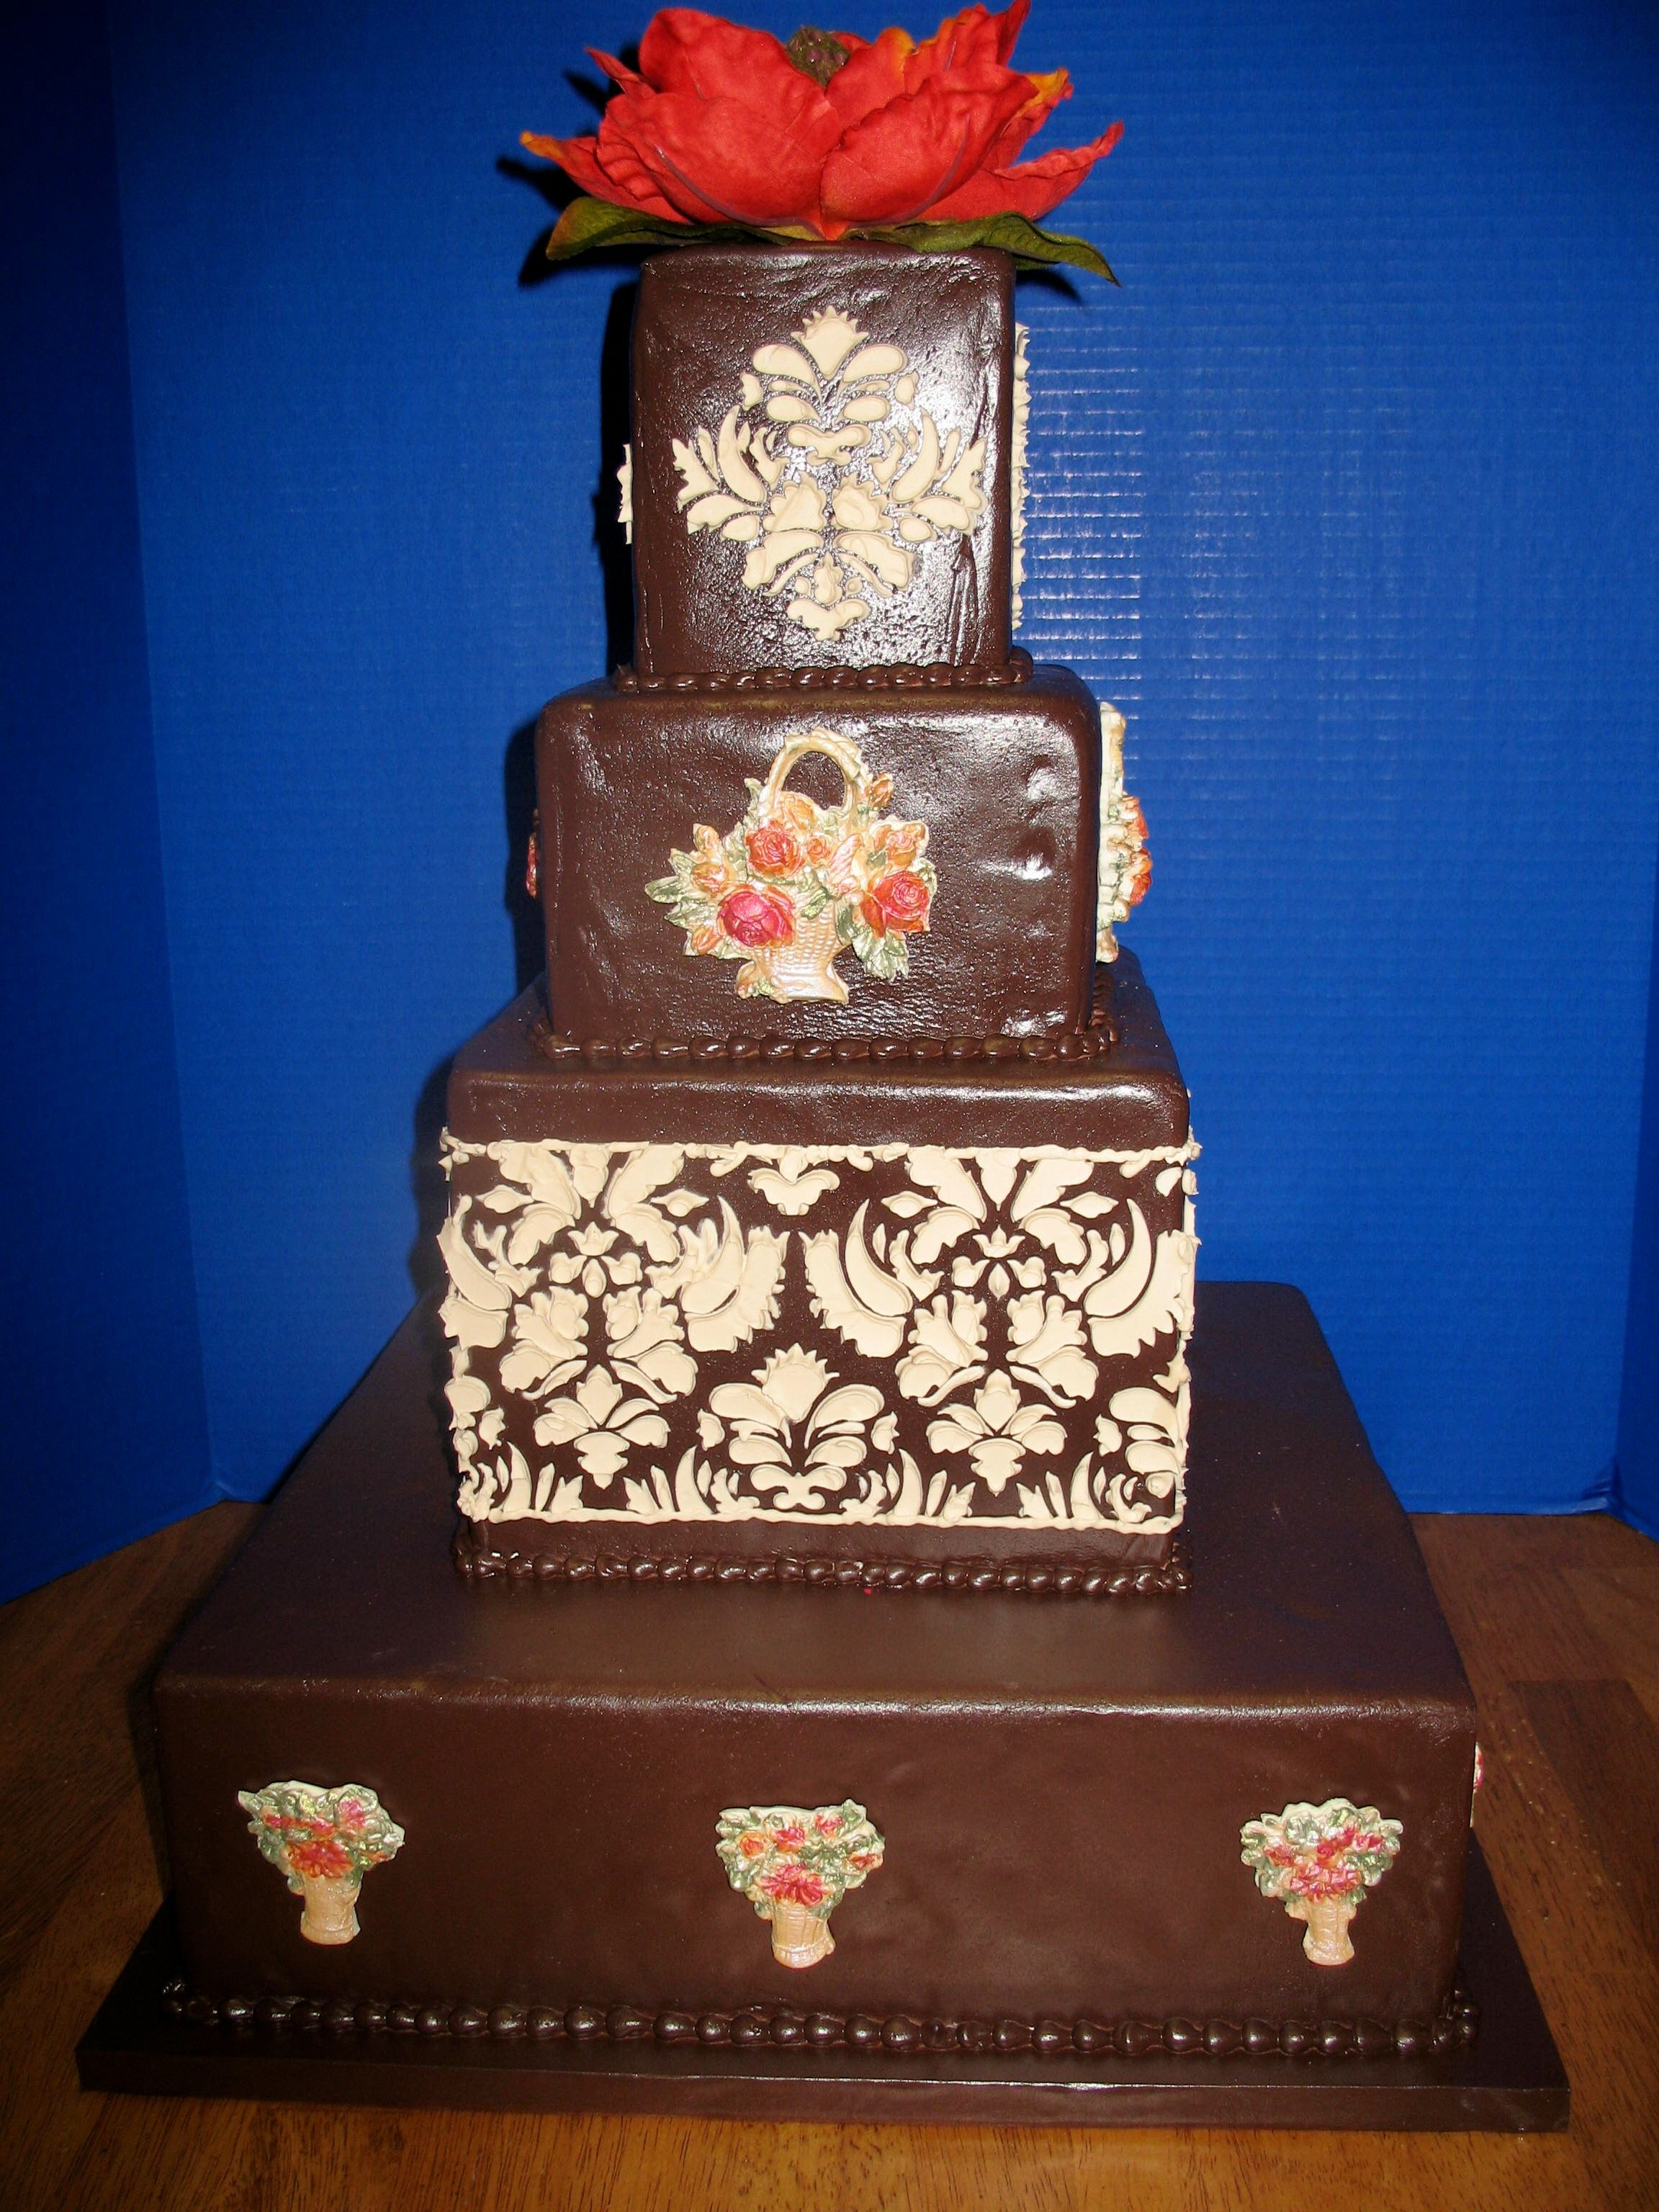 chocolate fall themed wedding cake wwwcheesecakeetcbiz wedding cakes charlotte nc